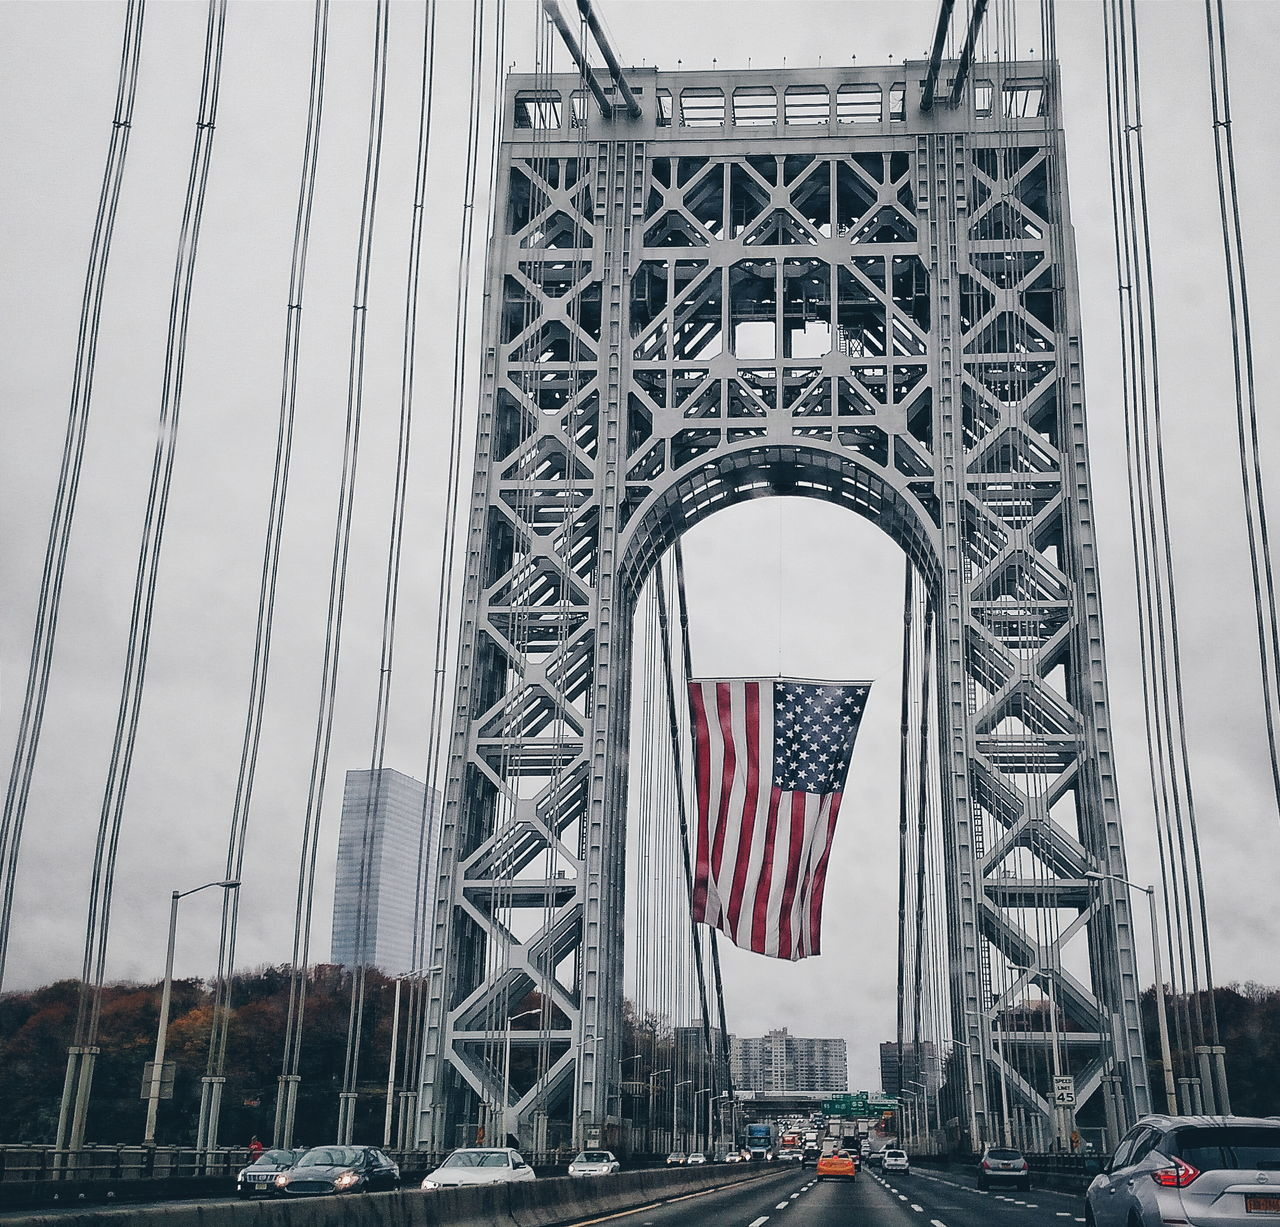 patriotism, flag, built structure, stars and stripes, transportation, day, architecture, outdoors, low angle view, no people, sky